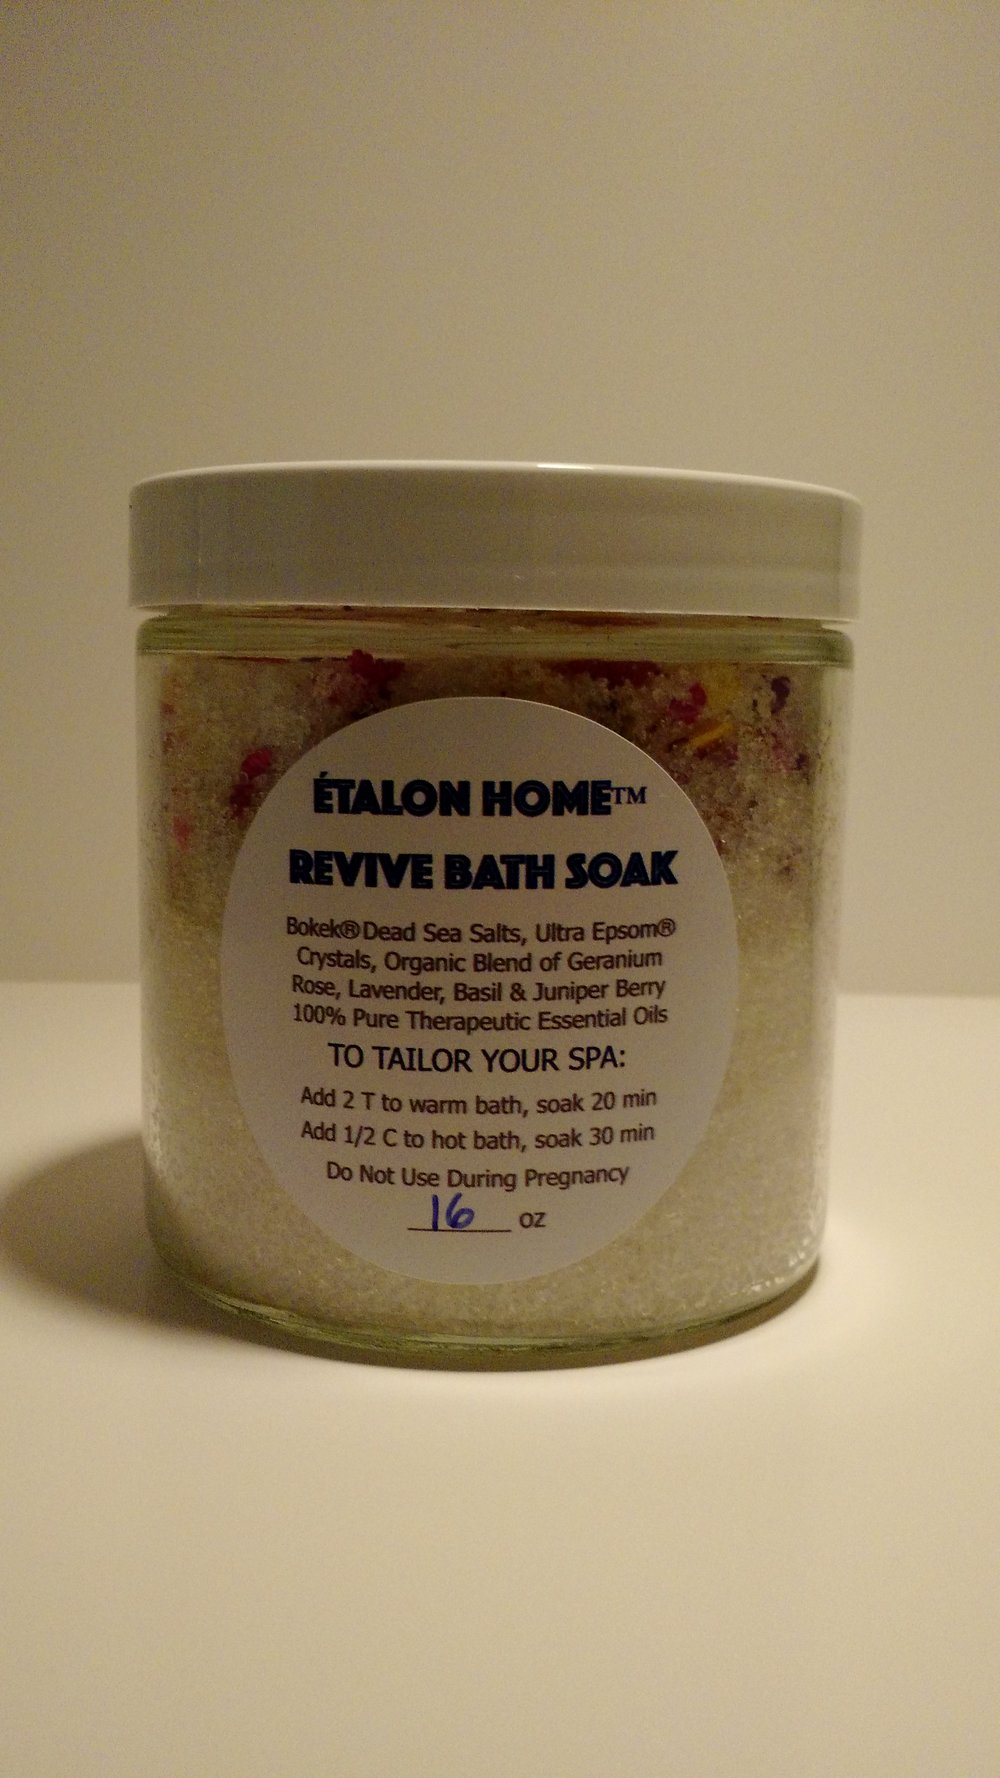 Revive Bath Soak - Originally created to treat symptoms of gout, we found our botanical blend of organic herb and floral oils provided therapeutic benefits of aromatherapy containing properties to calm, soothe, relax, balance and uplift emotions, tone, clear the mind and detoxify.  We have formulated our exclusive blend of 100% pure organic essential oils with the finest mineral salts in the world.  Bokek Dead Sea Salt® is the only Optically Clean® Dead Sea Salt available making it the cleanest, most natural unrefined Dead Sea Salt on the market. Ultra Epsom Salt® is the highest quality, pharmaceutical grade Epsom Salt available and is know for its exceptional purity and therapeutic value.Anyone using Étalon Home™ Revive Bath Soak will enjoy their time in the tub!Price:  16oz Glass Jar $24.00